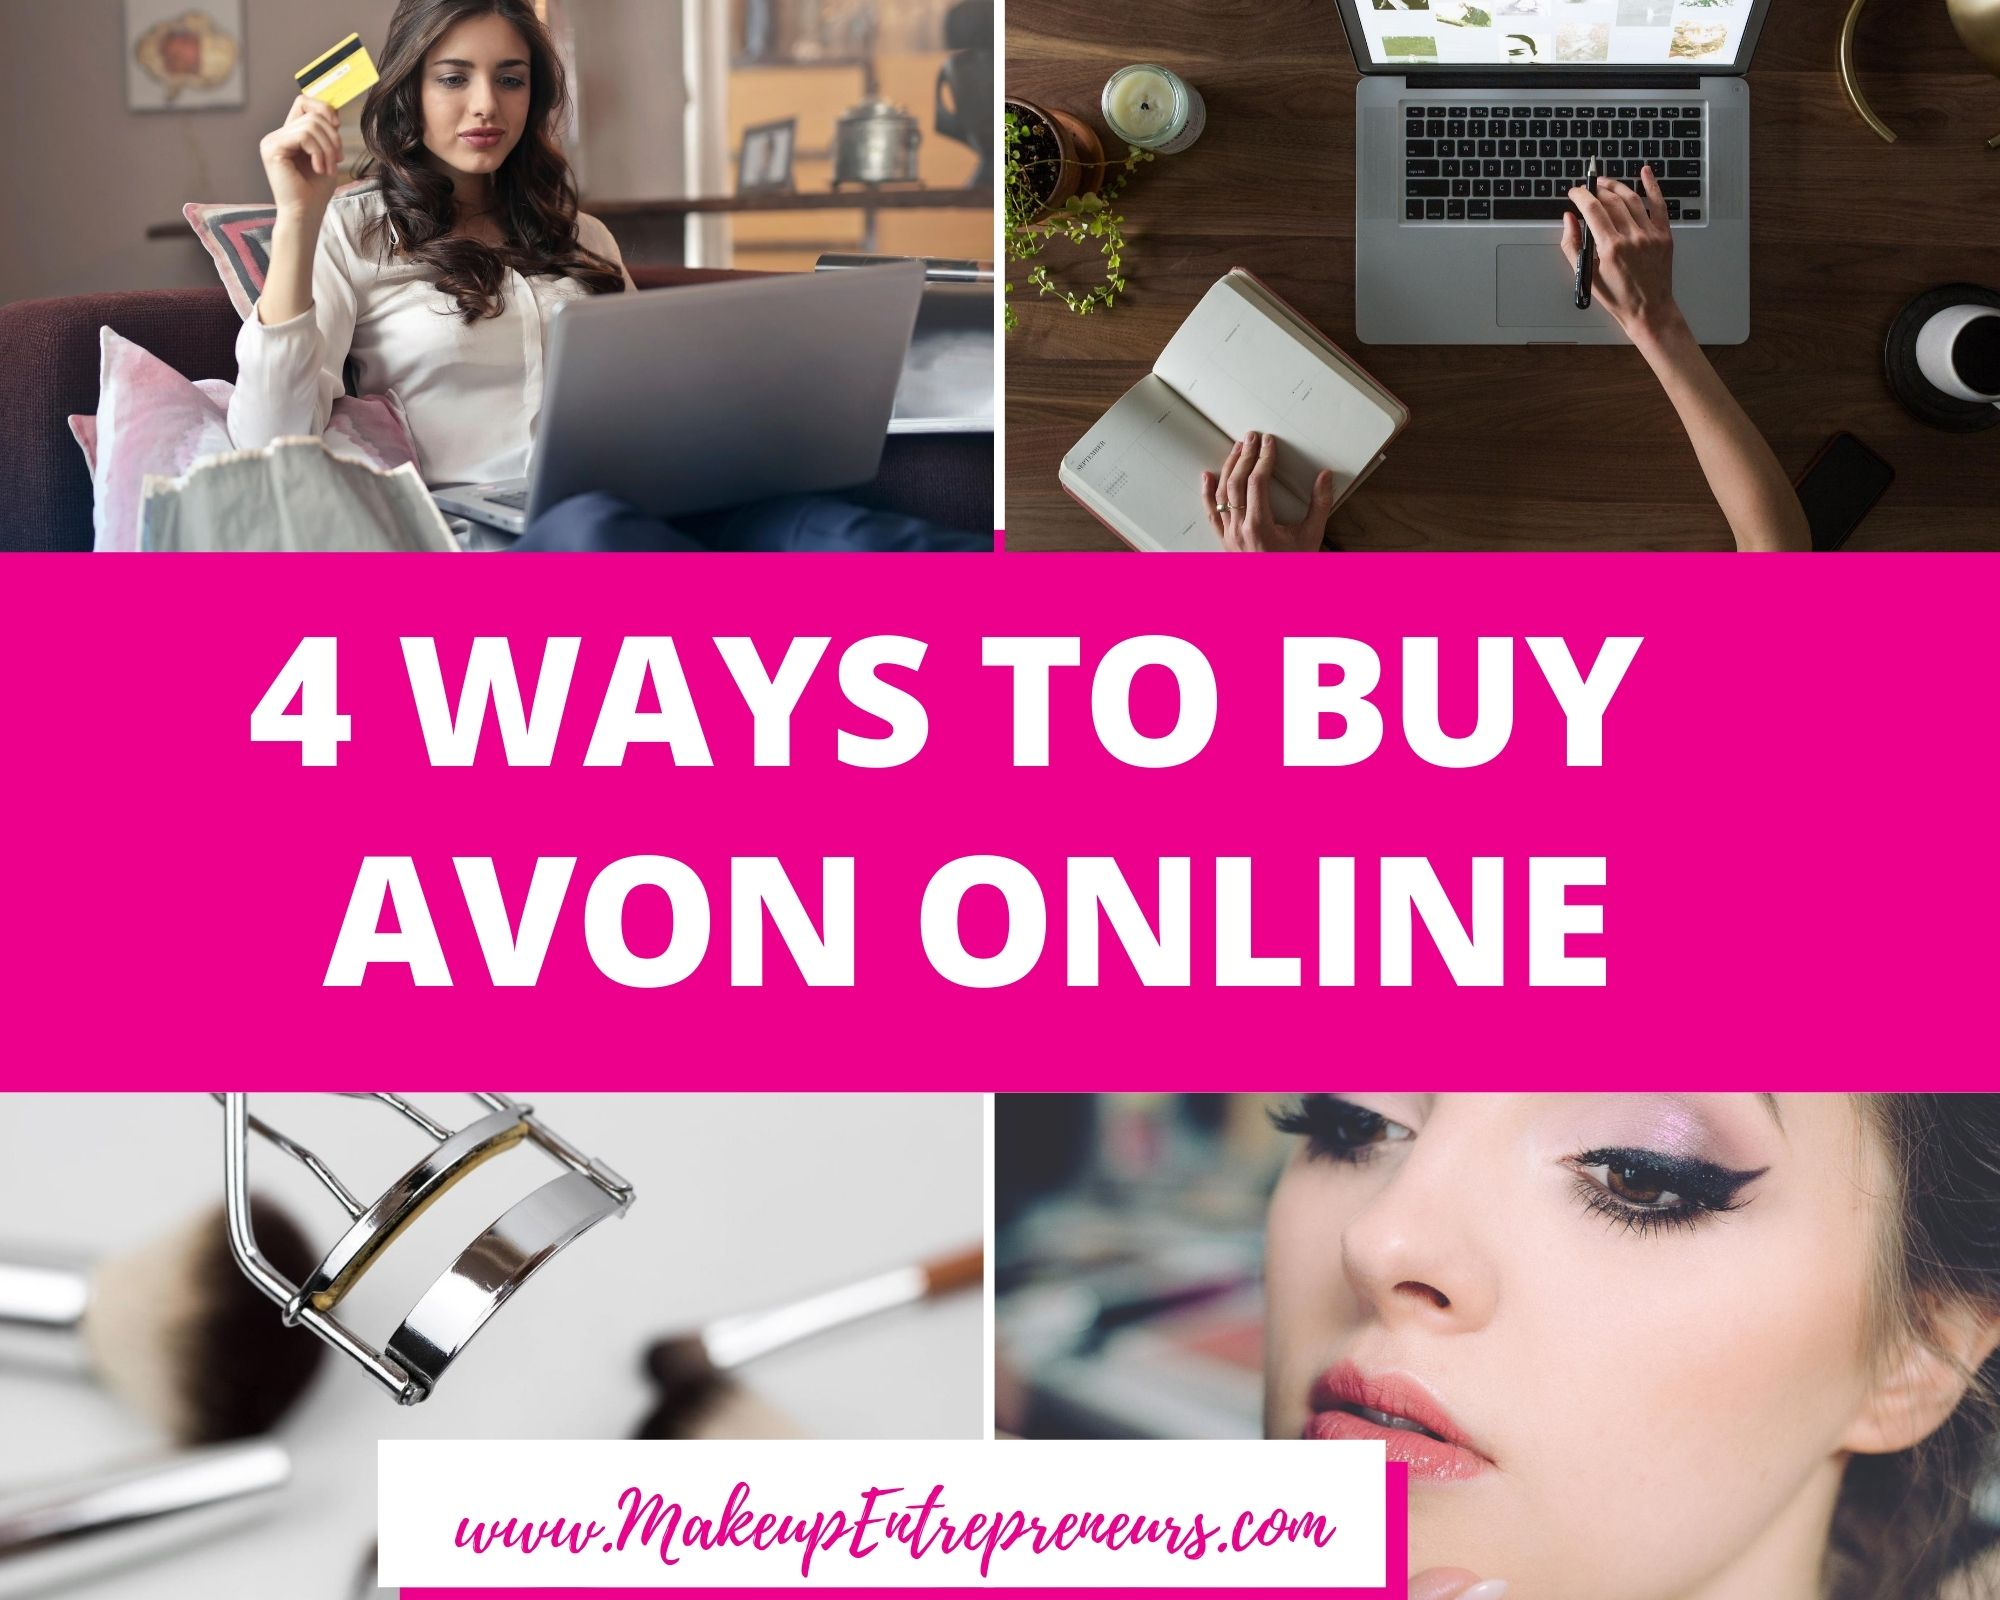 4 ways to buy avon online makeup Entrepreneurs